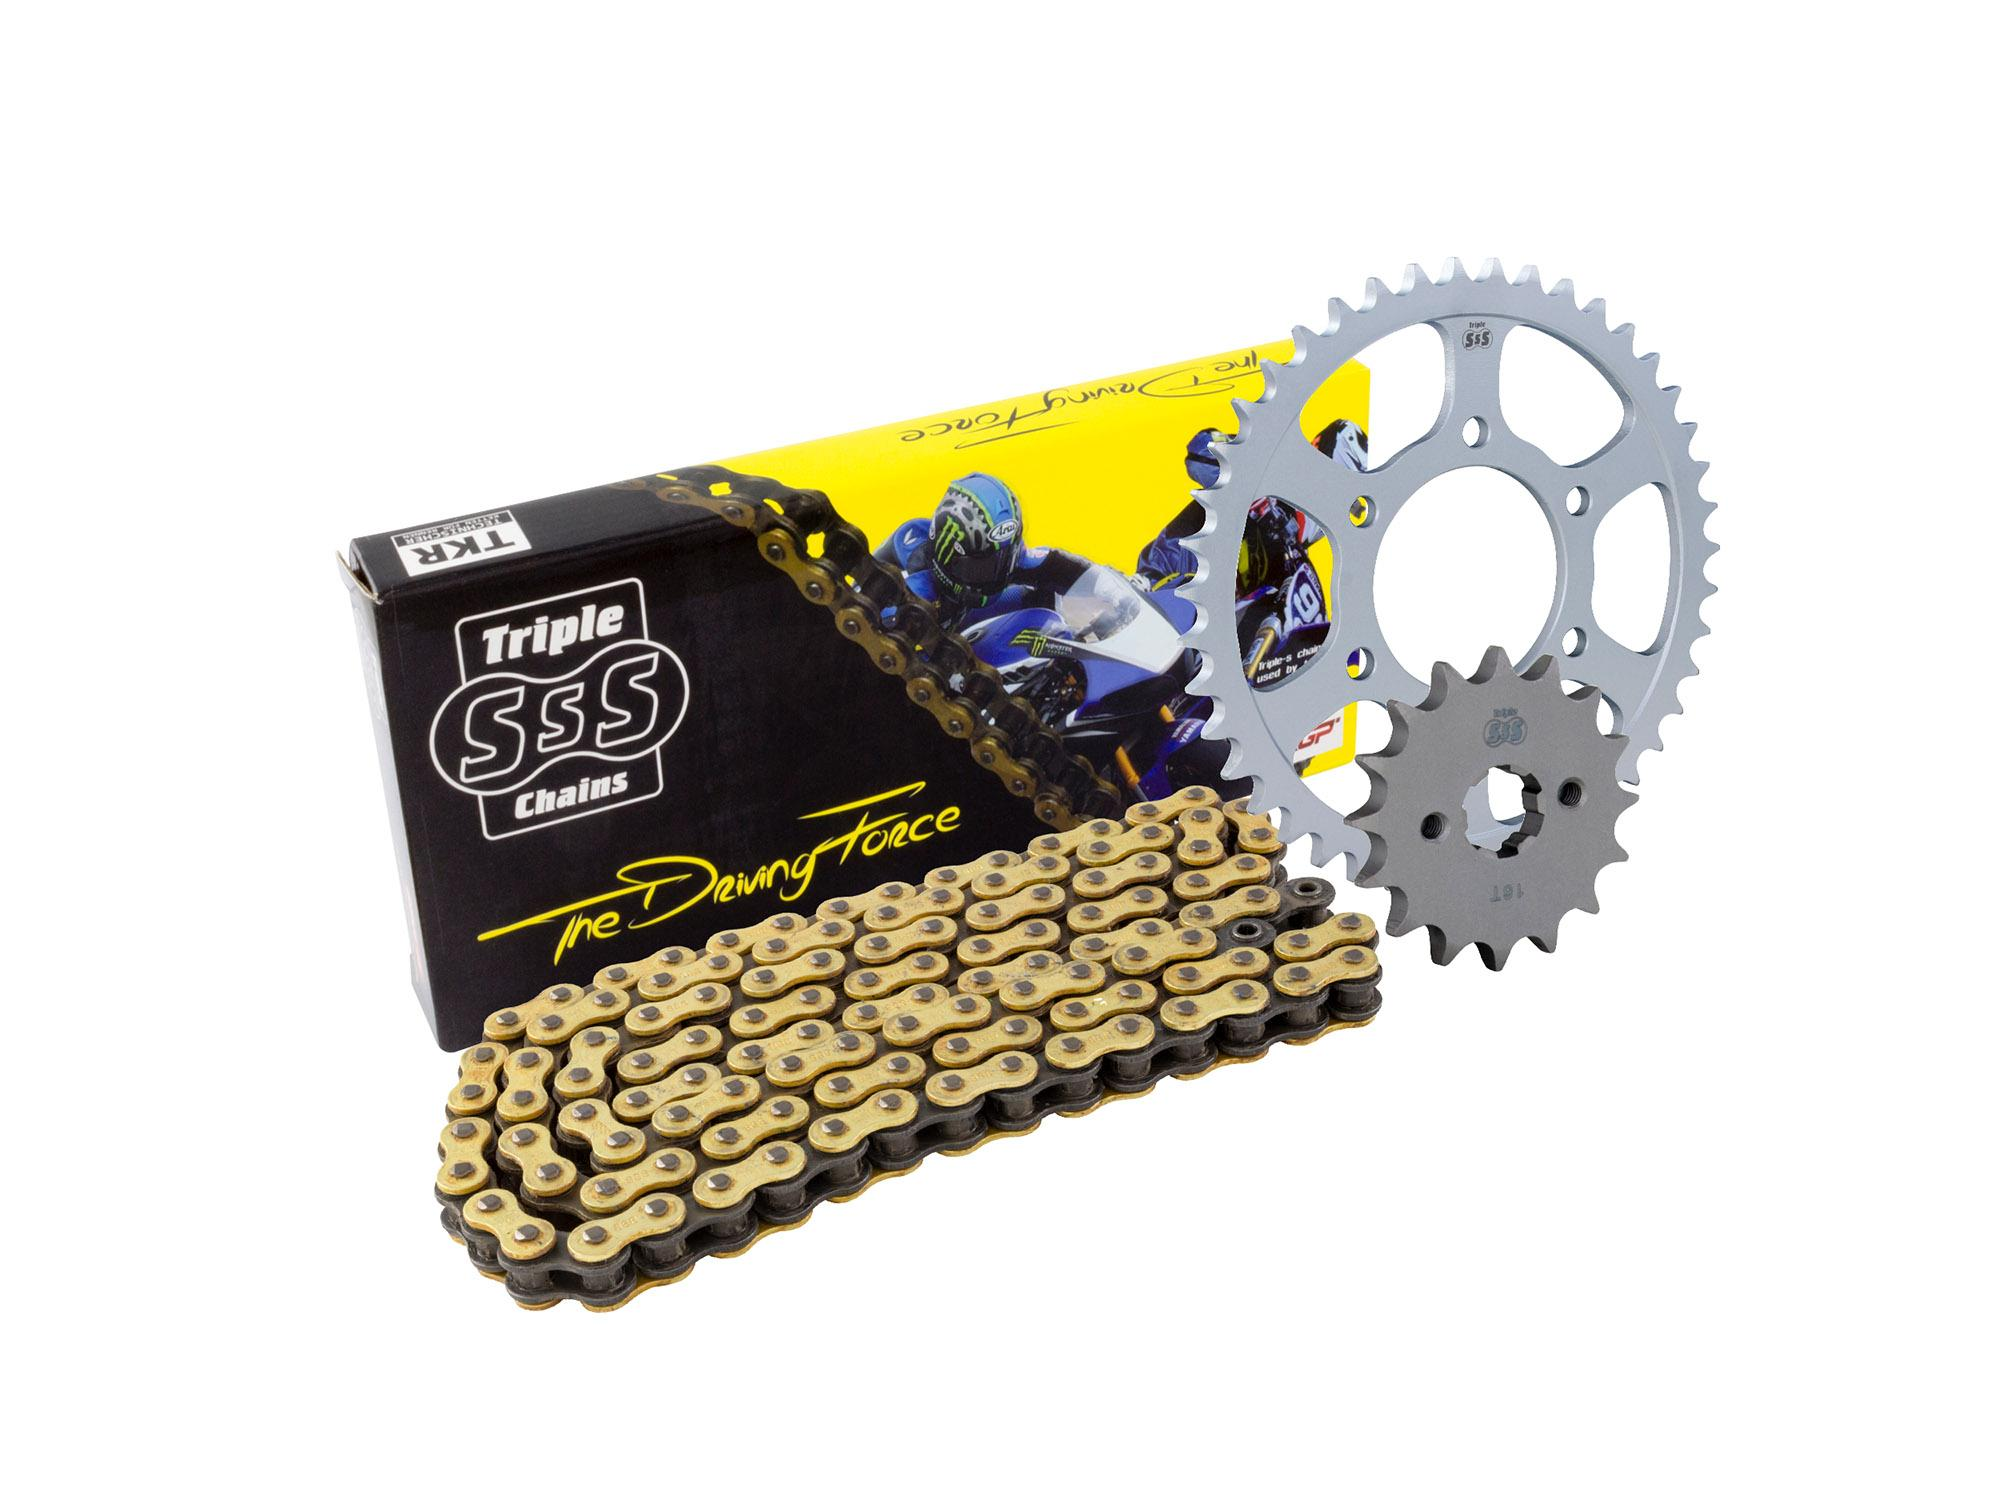 Suzuki GSX-R750 K4/K5 Fuel Inj 04-05 Chain & Sprocket Kit: 17T Front, 43T Rear, HD O-Ring Gold Chain 525H 110 Link